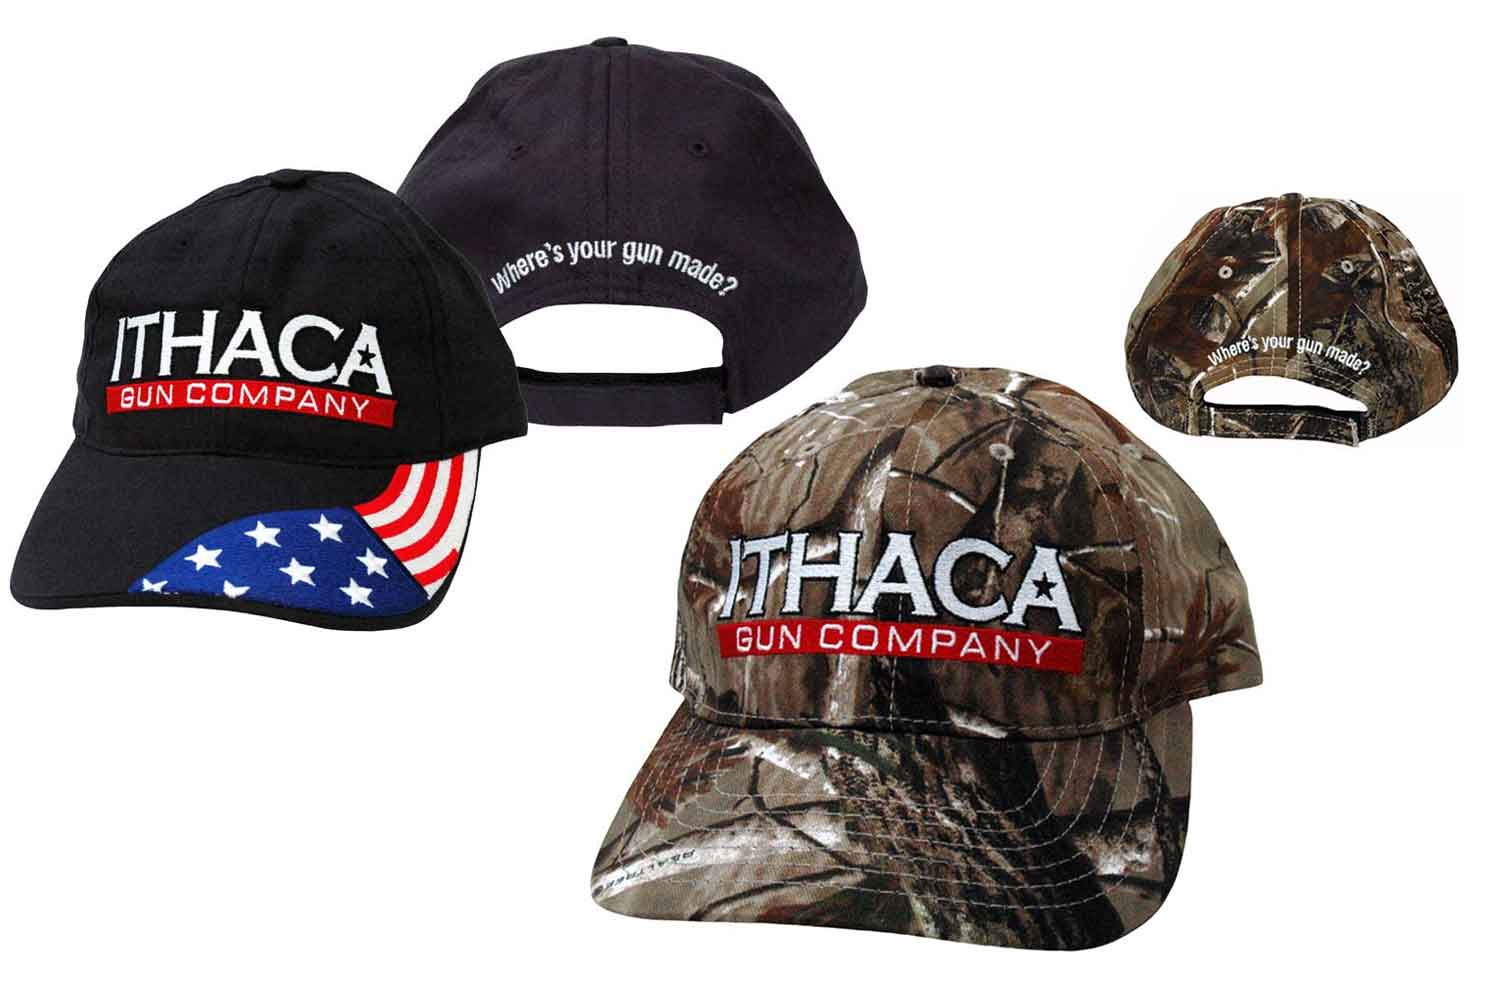 Ithaca Clothing & Accessories